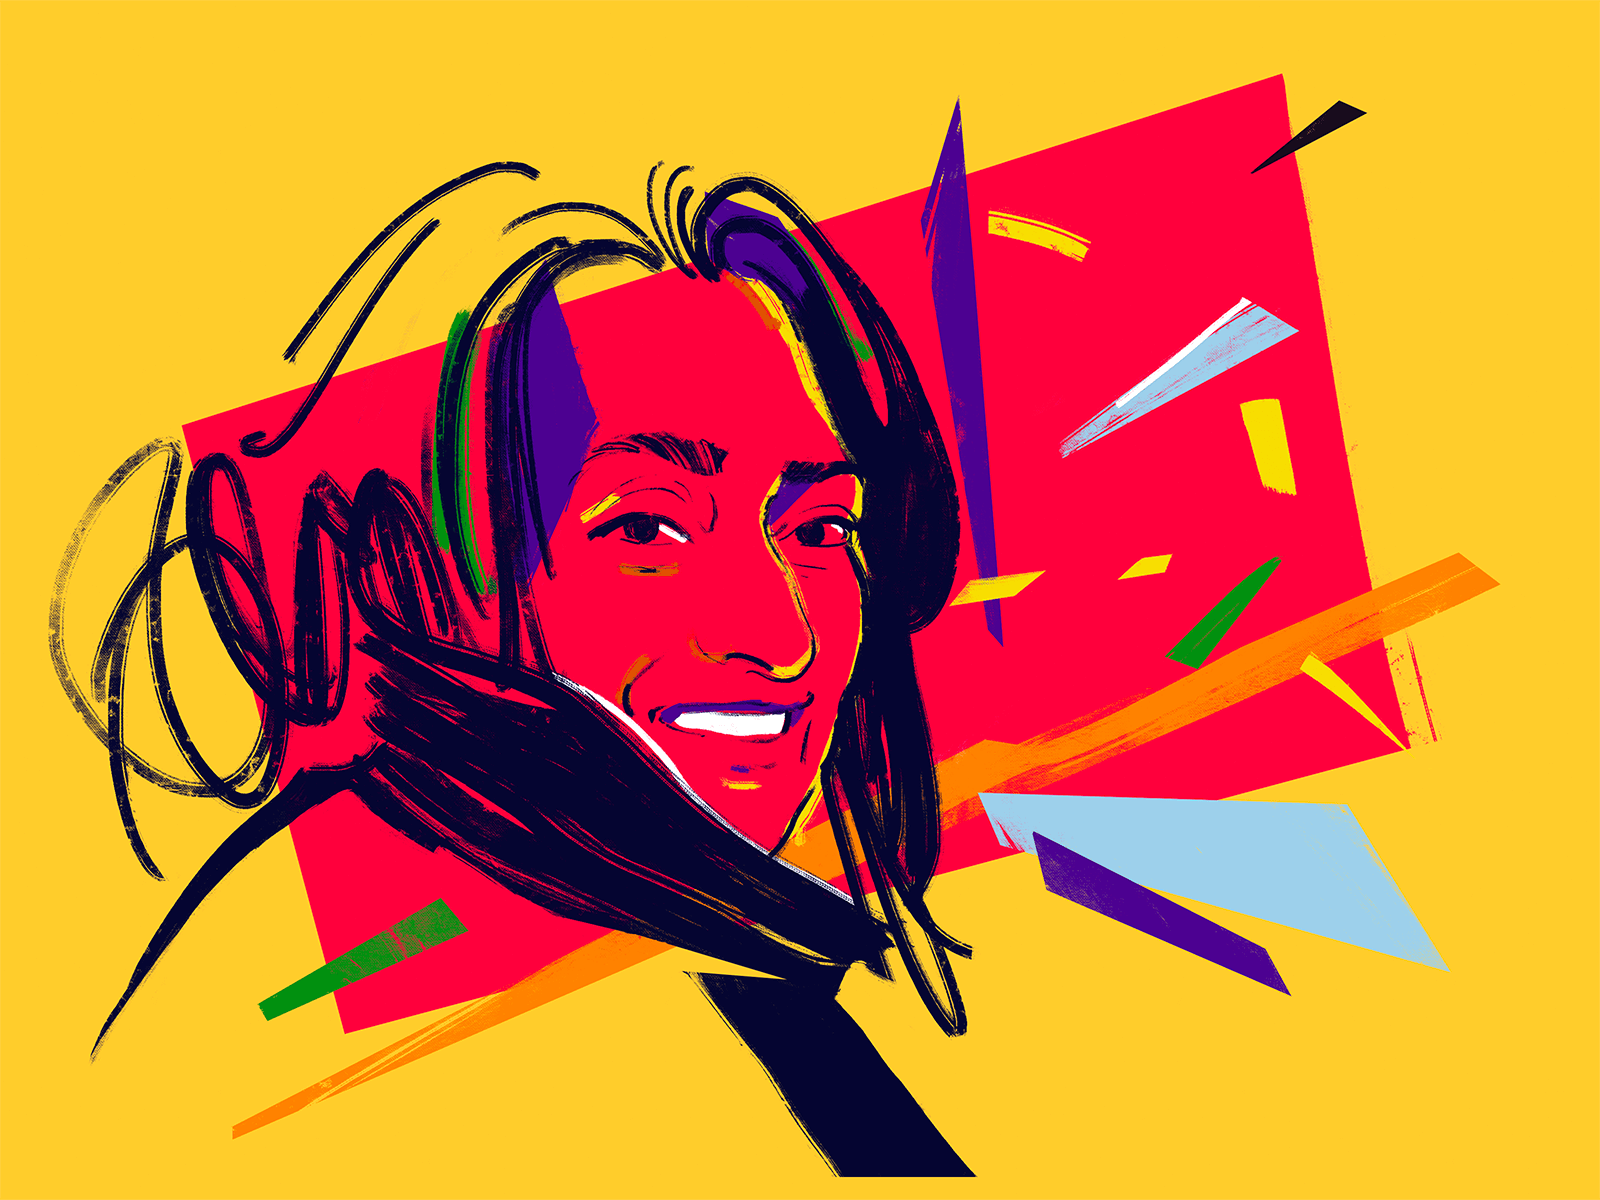 Zaha Hadid Digital Portrait